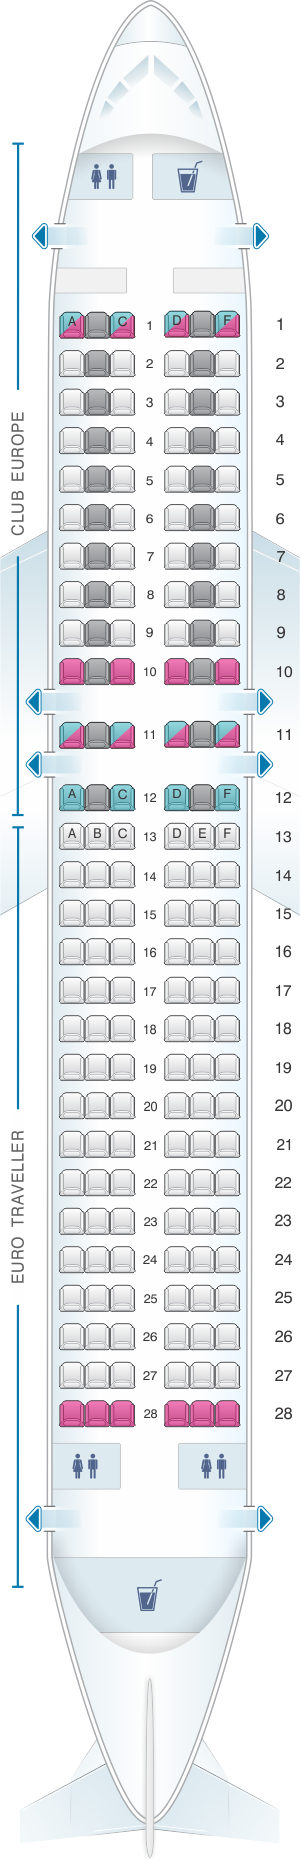 Seat map for British Airways Airbus A320 European Layout